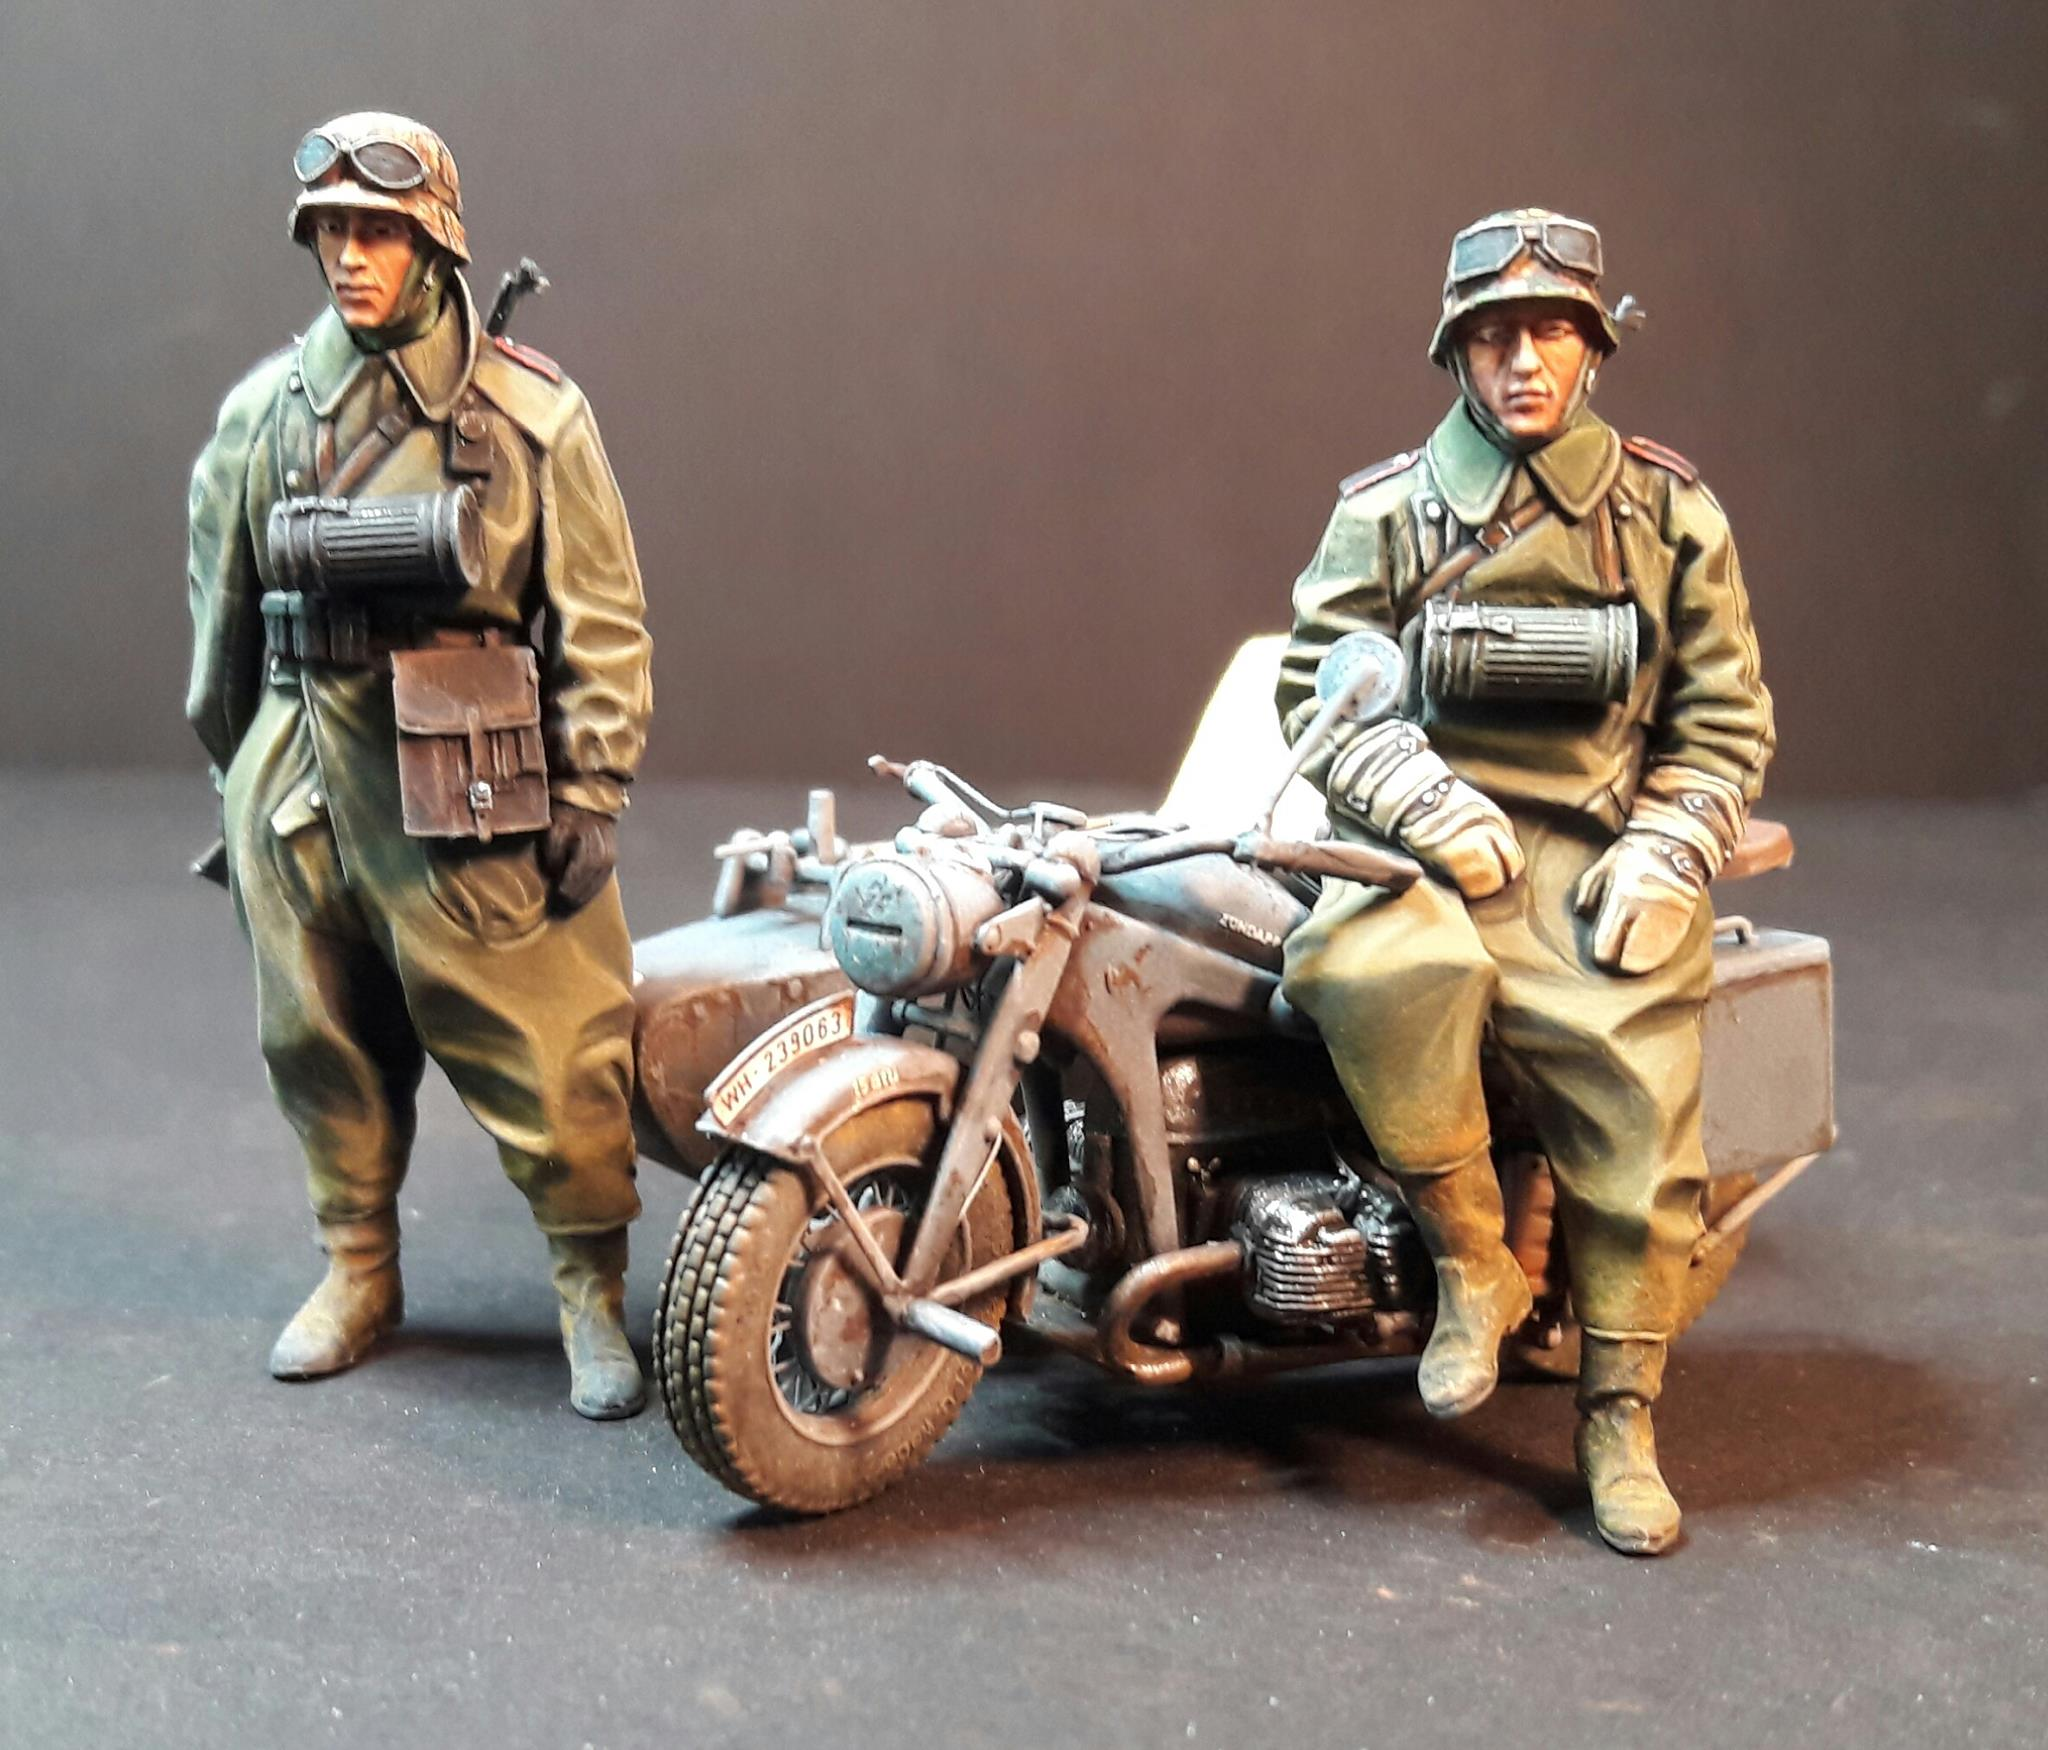 Zündapp KS750 - Sidecar - Great Wall Hobby + figurines Alpine - 1/35 - Page 5 5676752005028510211786806920170596811561o